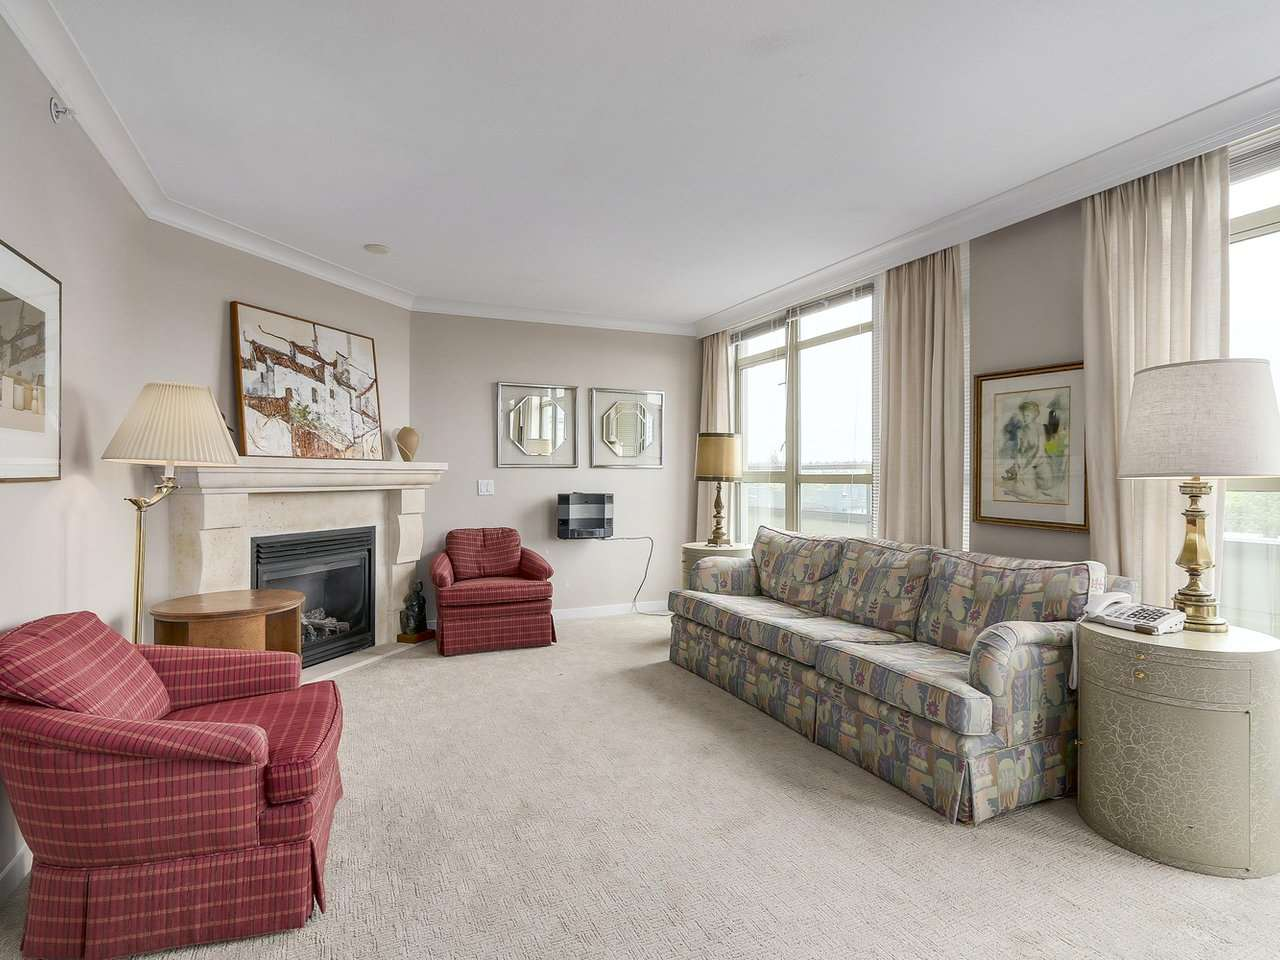 "Photo 2: 701 2799 YEW Street in Vancouver: Kitsilano Condo for sale in ""TAPESTRY AT ARBUTUS WALK (O'Keefe)"" (Vancouver West)  : MLS(r) # R2178410"